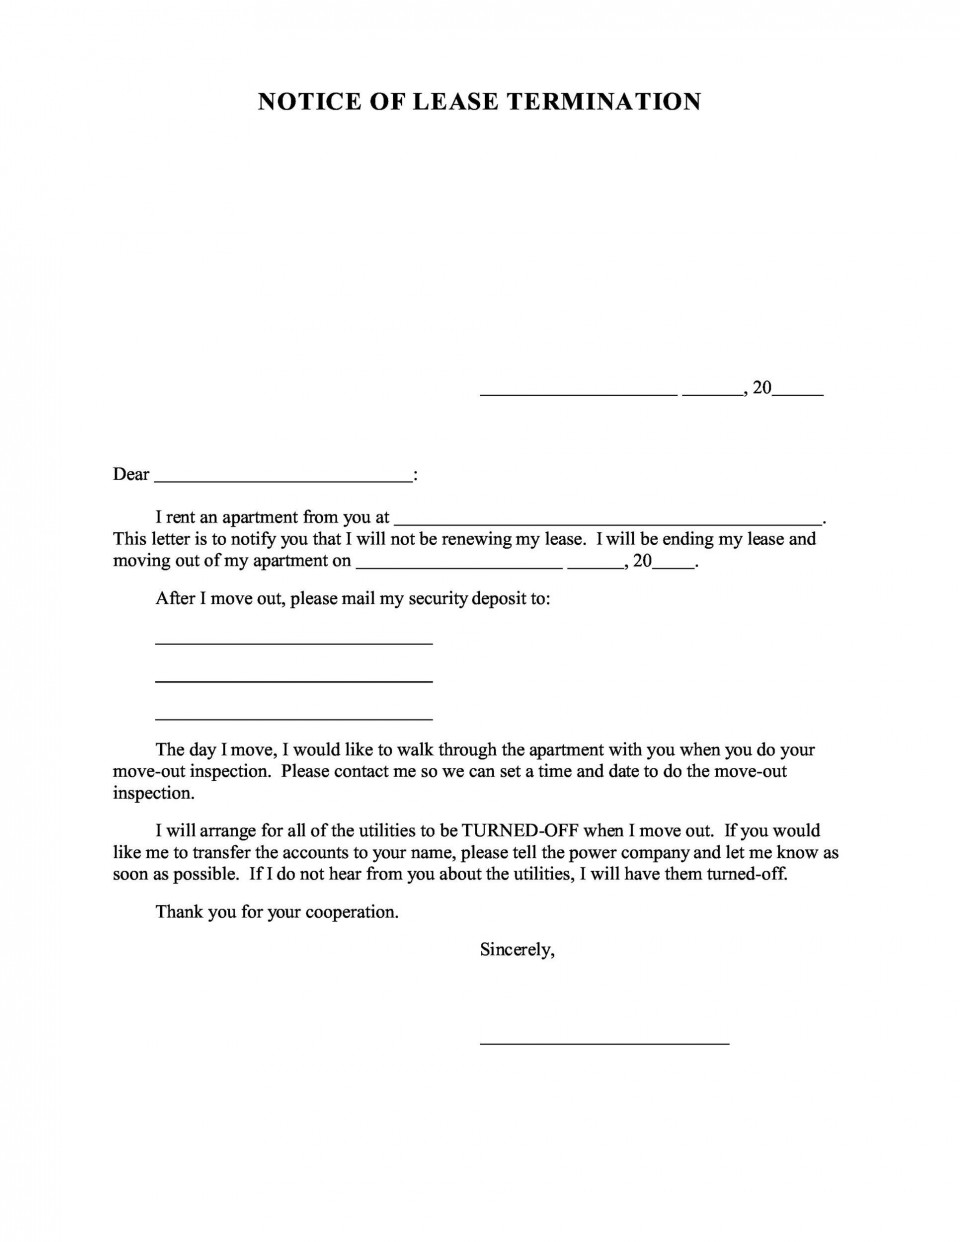 006 Breathtaking Free Eviction Notice Template Inspiration  Printable Texa Pdf960